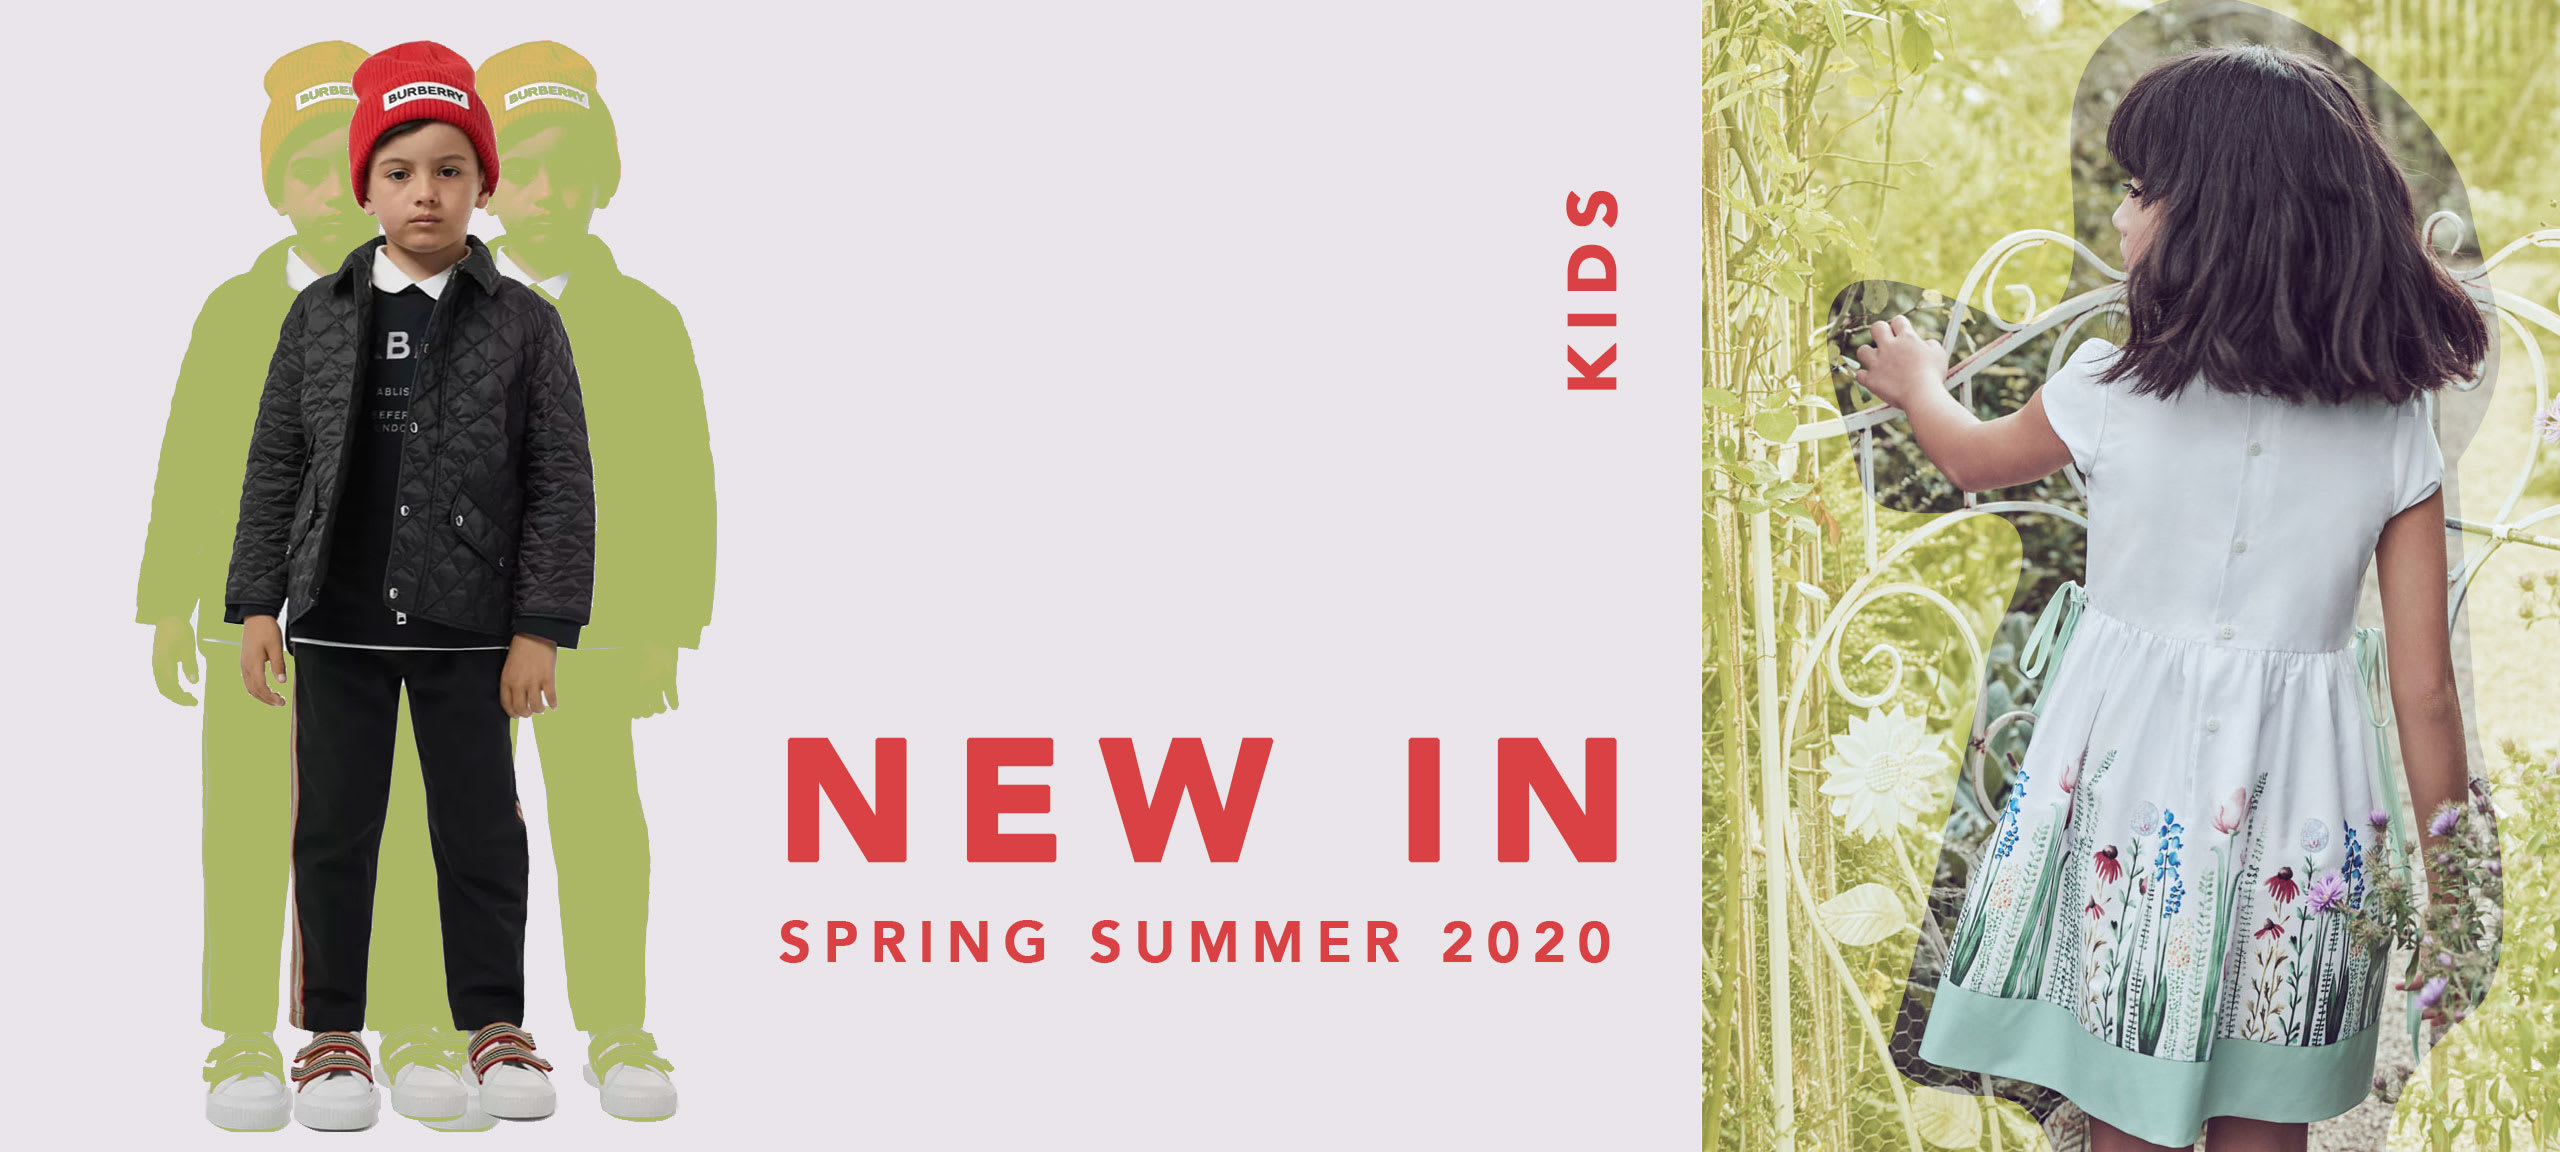 Kids New In Spring Summer 2020 by italist